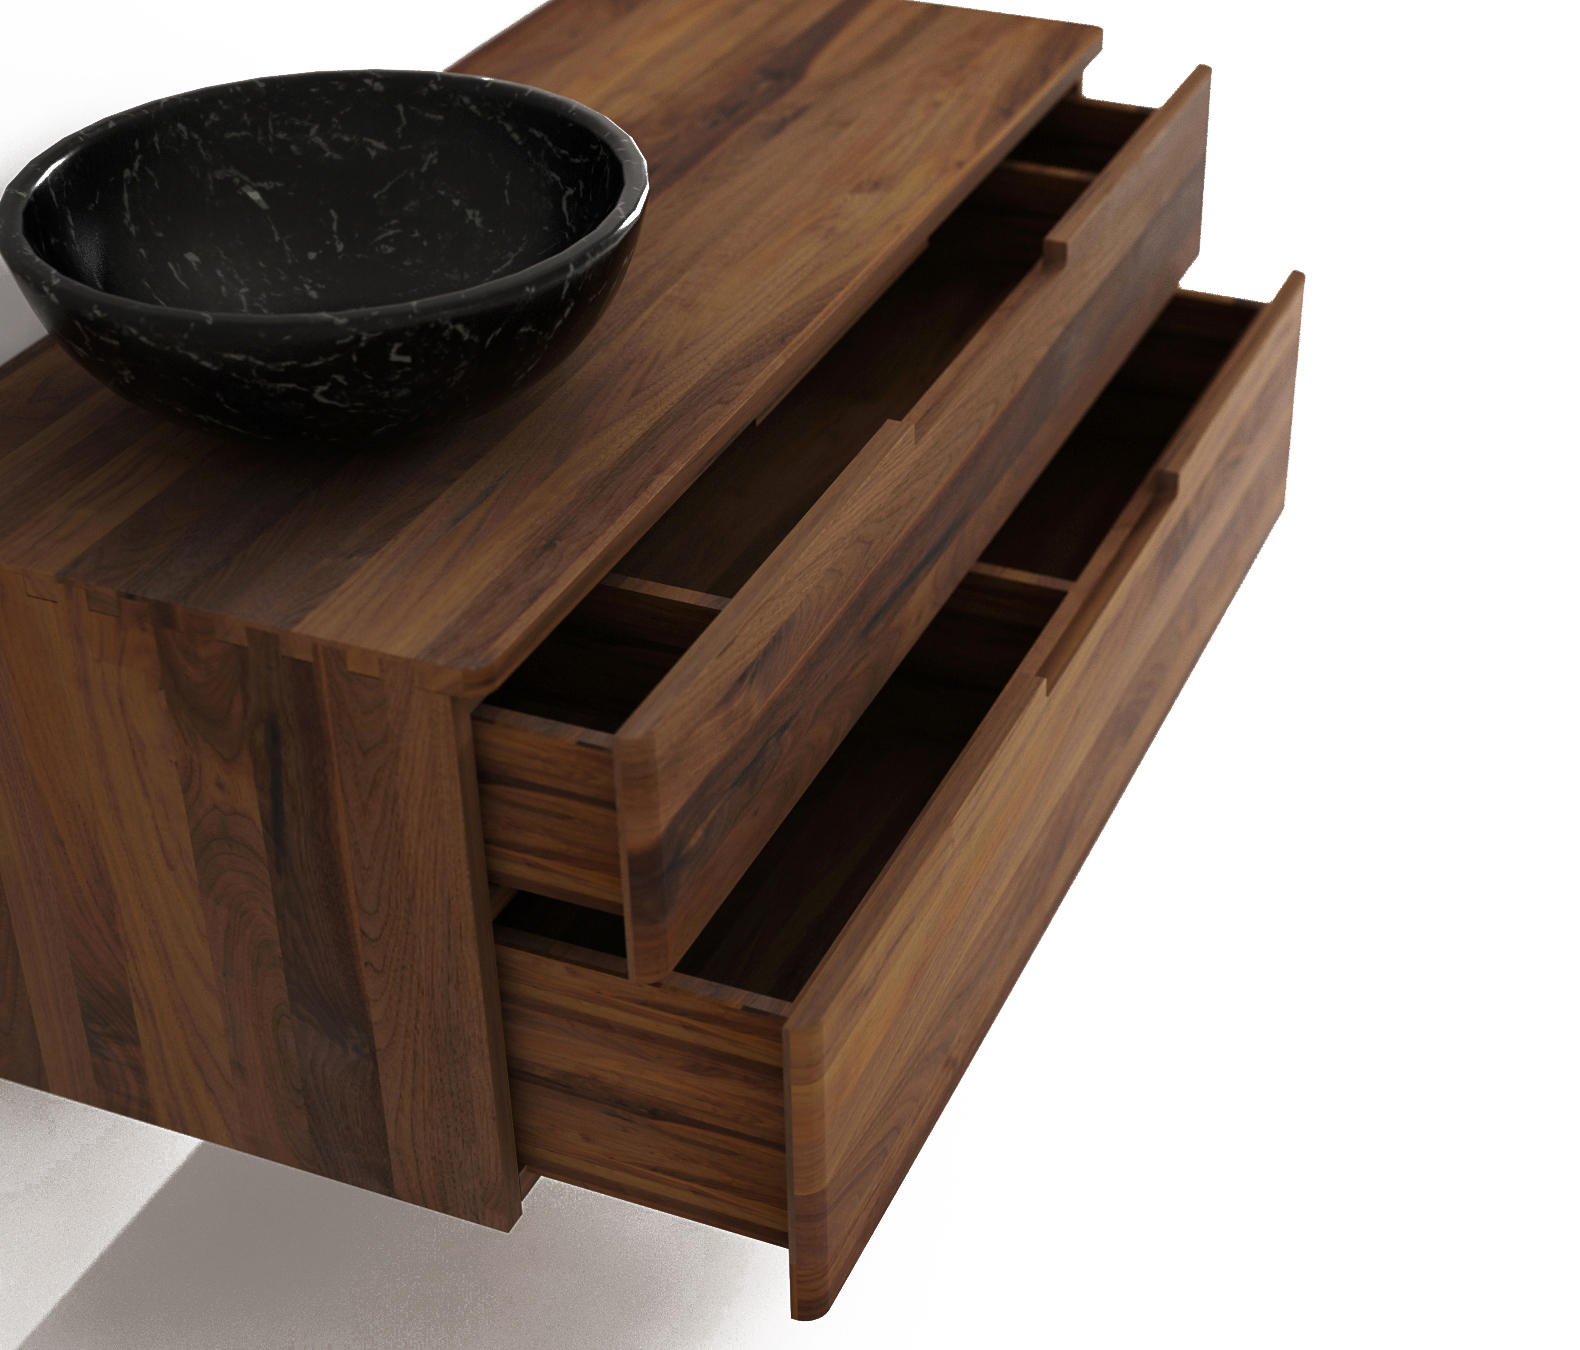 BAKER HANGING BASIN 2 DRAWERS - Wall cabinets from Karpenter ...